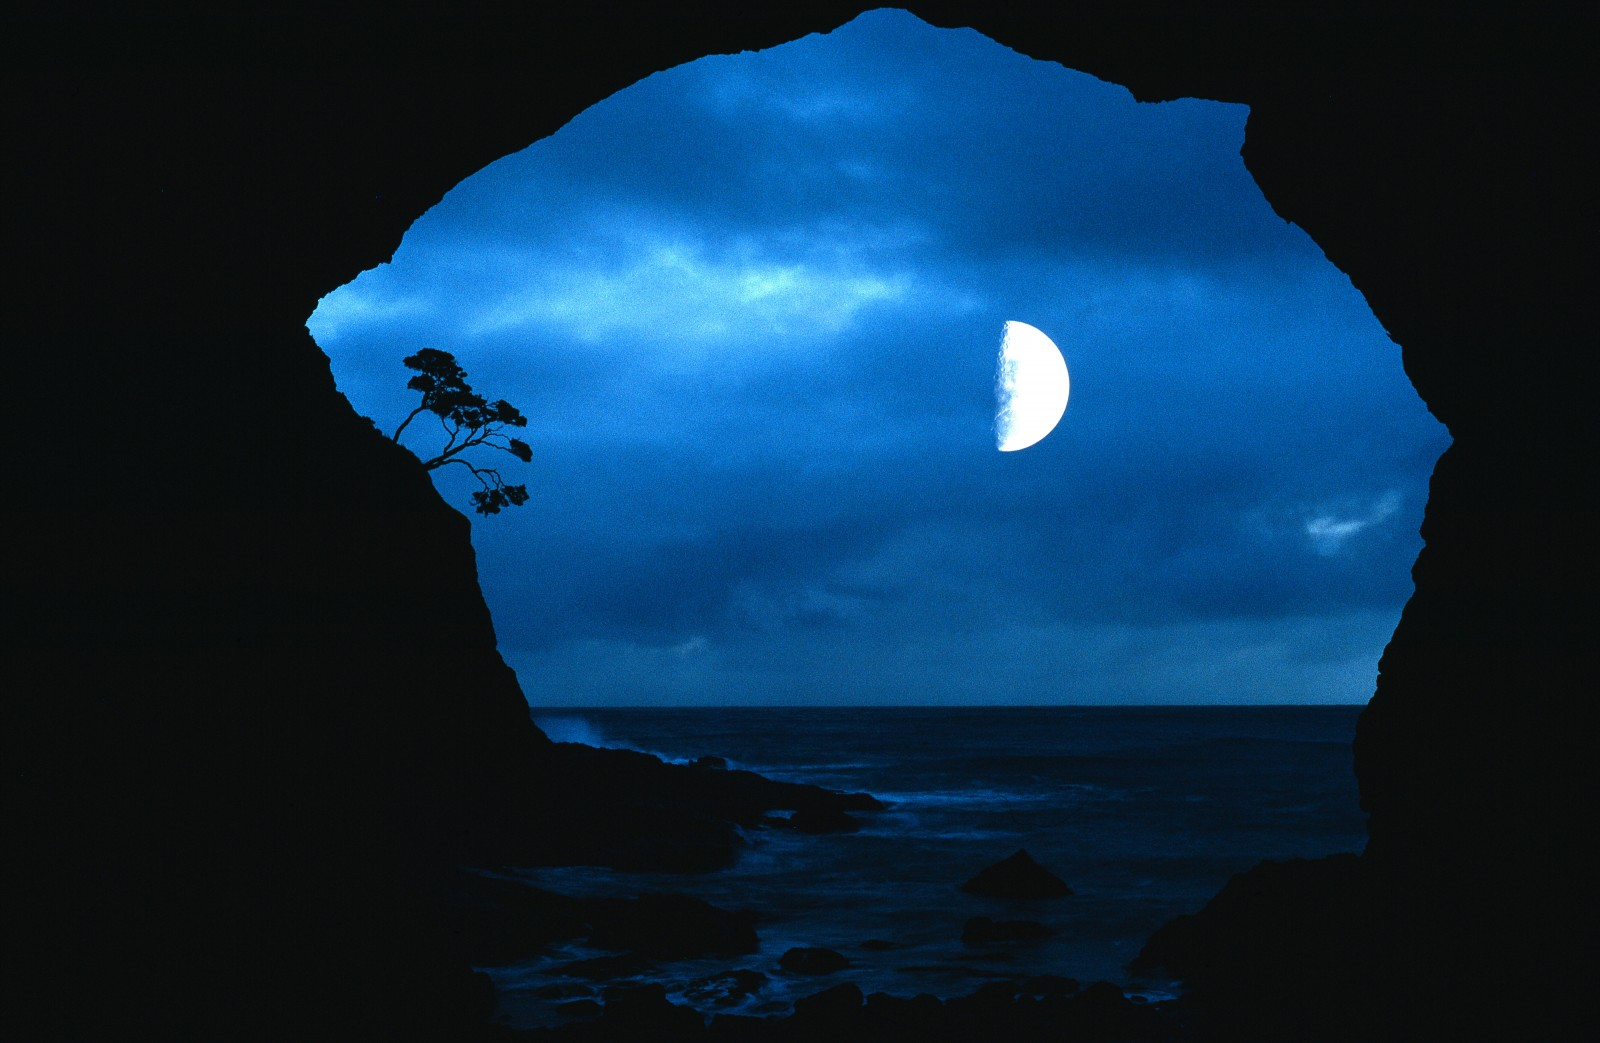 Let the secrets of this cave remain with the moon, the pohutukawa and the moana. Caressing forever the whisperings of TE ARA WAIRUA.